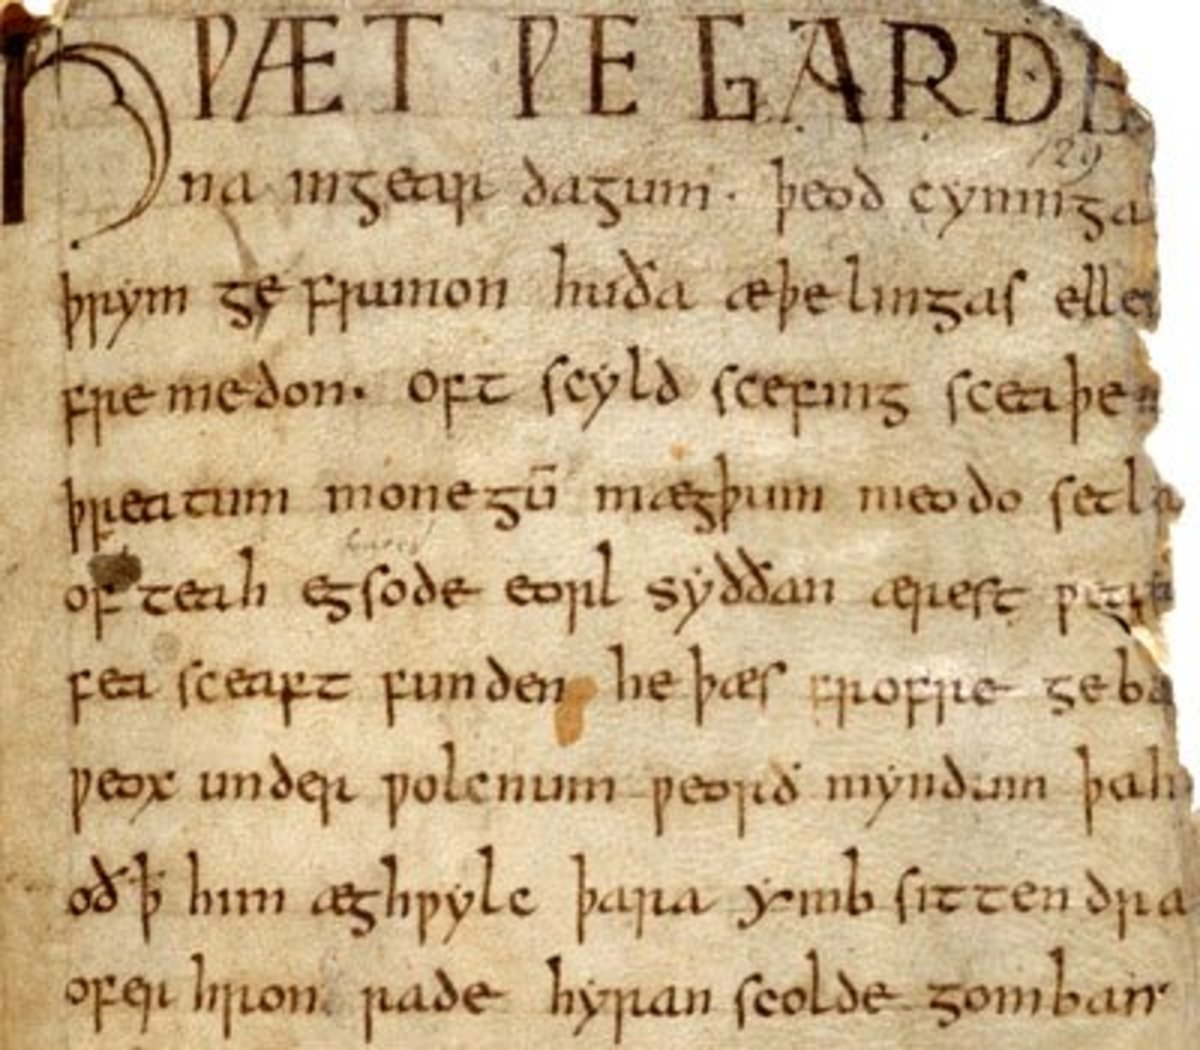 The original text of Beowulf was partially destroyed by fire.